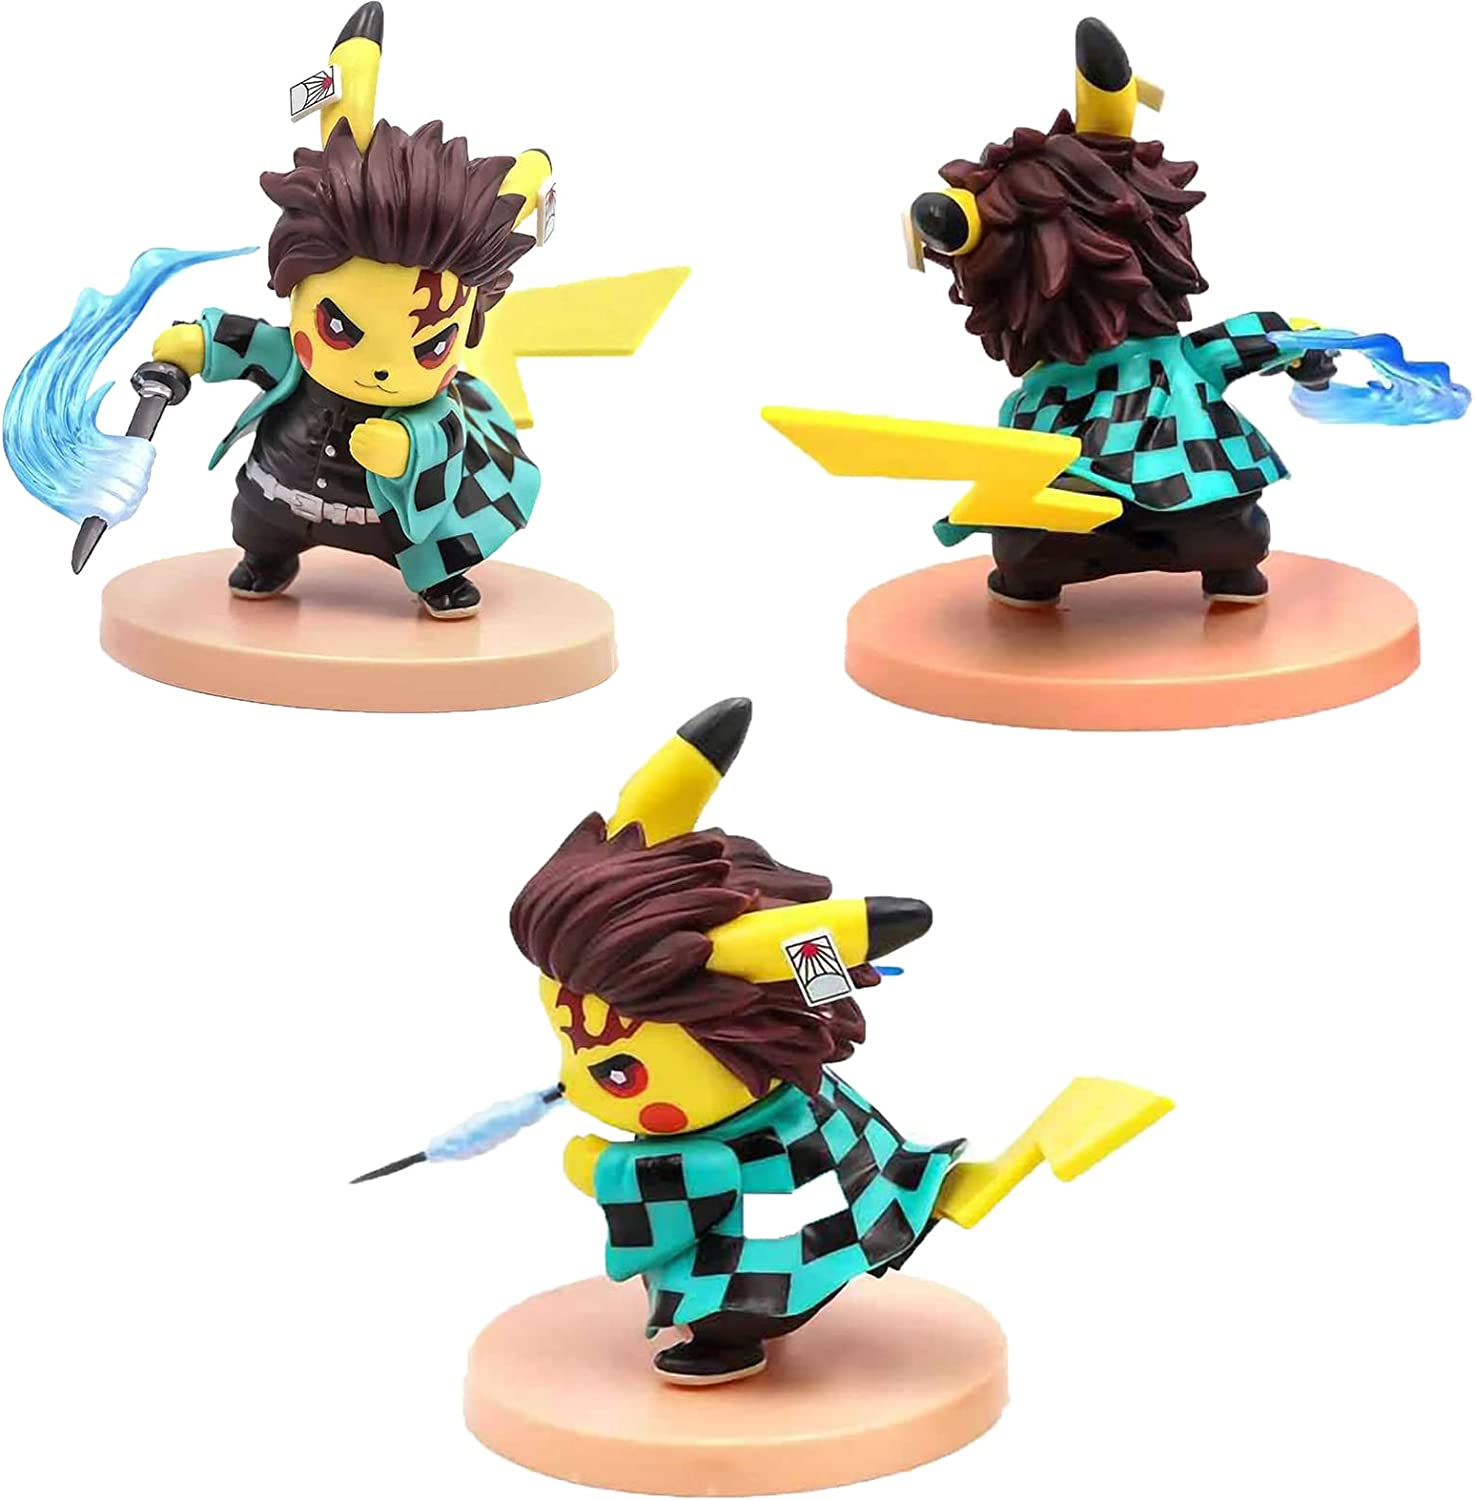 For Boys and Girls Birthday Party Figure Toys Gifts PVC 4.3 Birthday theme Party Supplies Demon Slayer Blade Pikachu Cosplay Birthday Cake Decoration